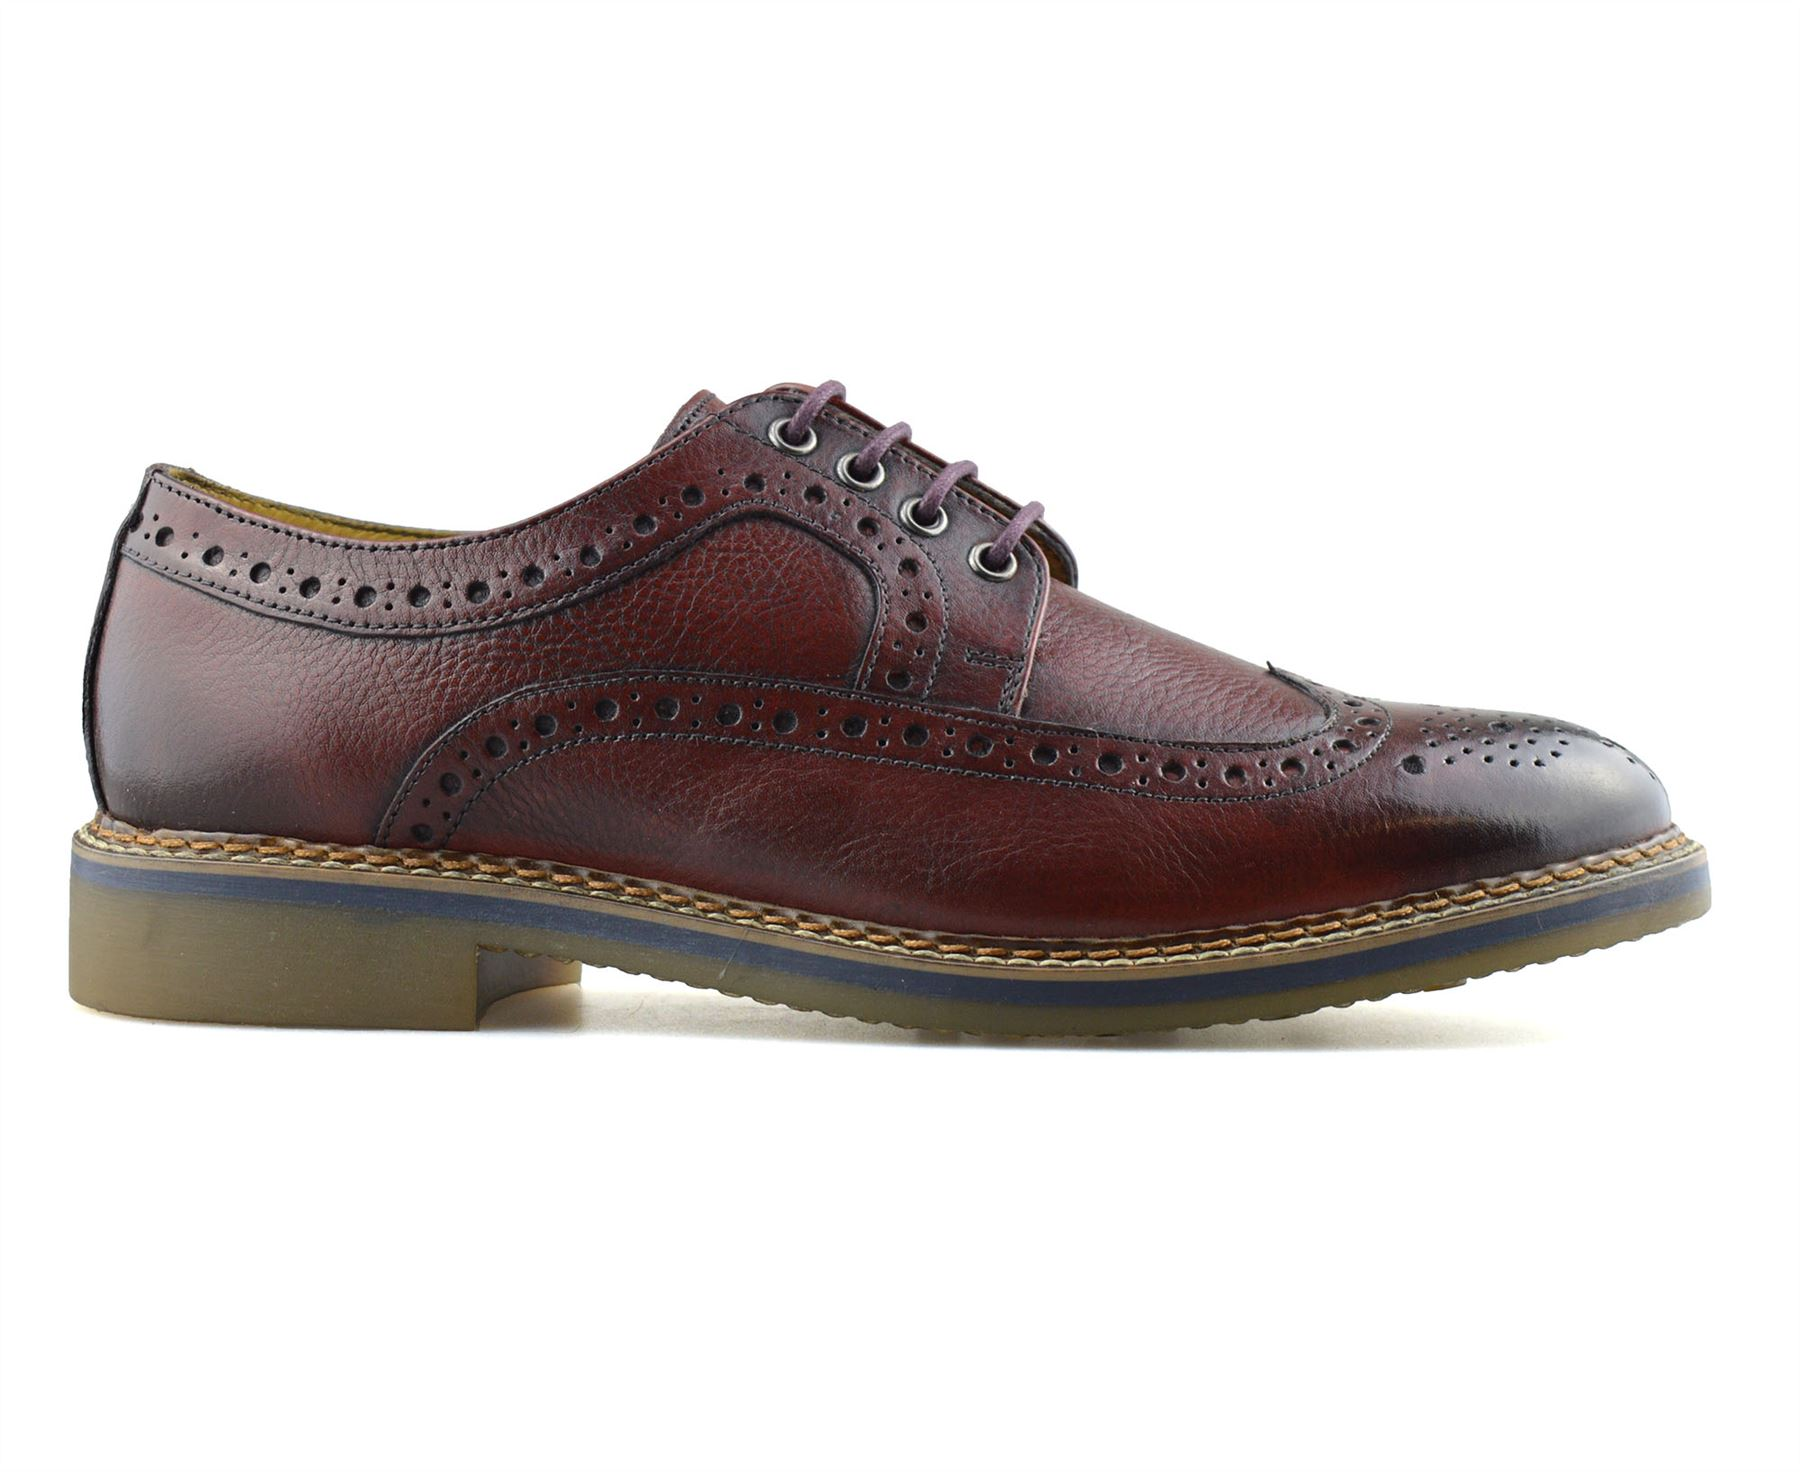 Mens-New-Ikon-Leather-Casual-Smart-Lace-Up-Oxford-Brogues-Work-Office-Shoes-Size thumbnail 26